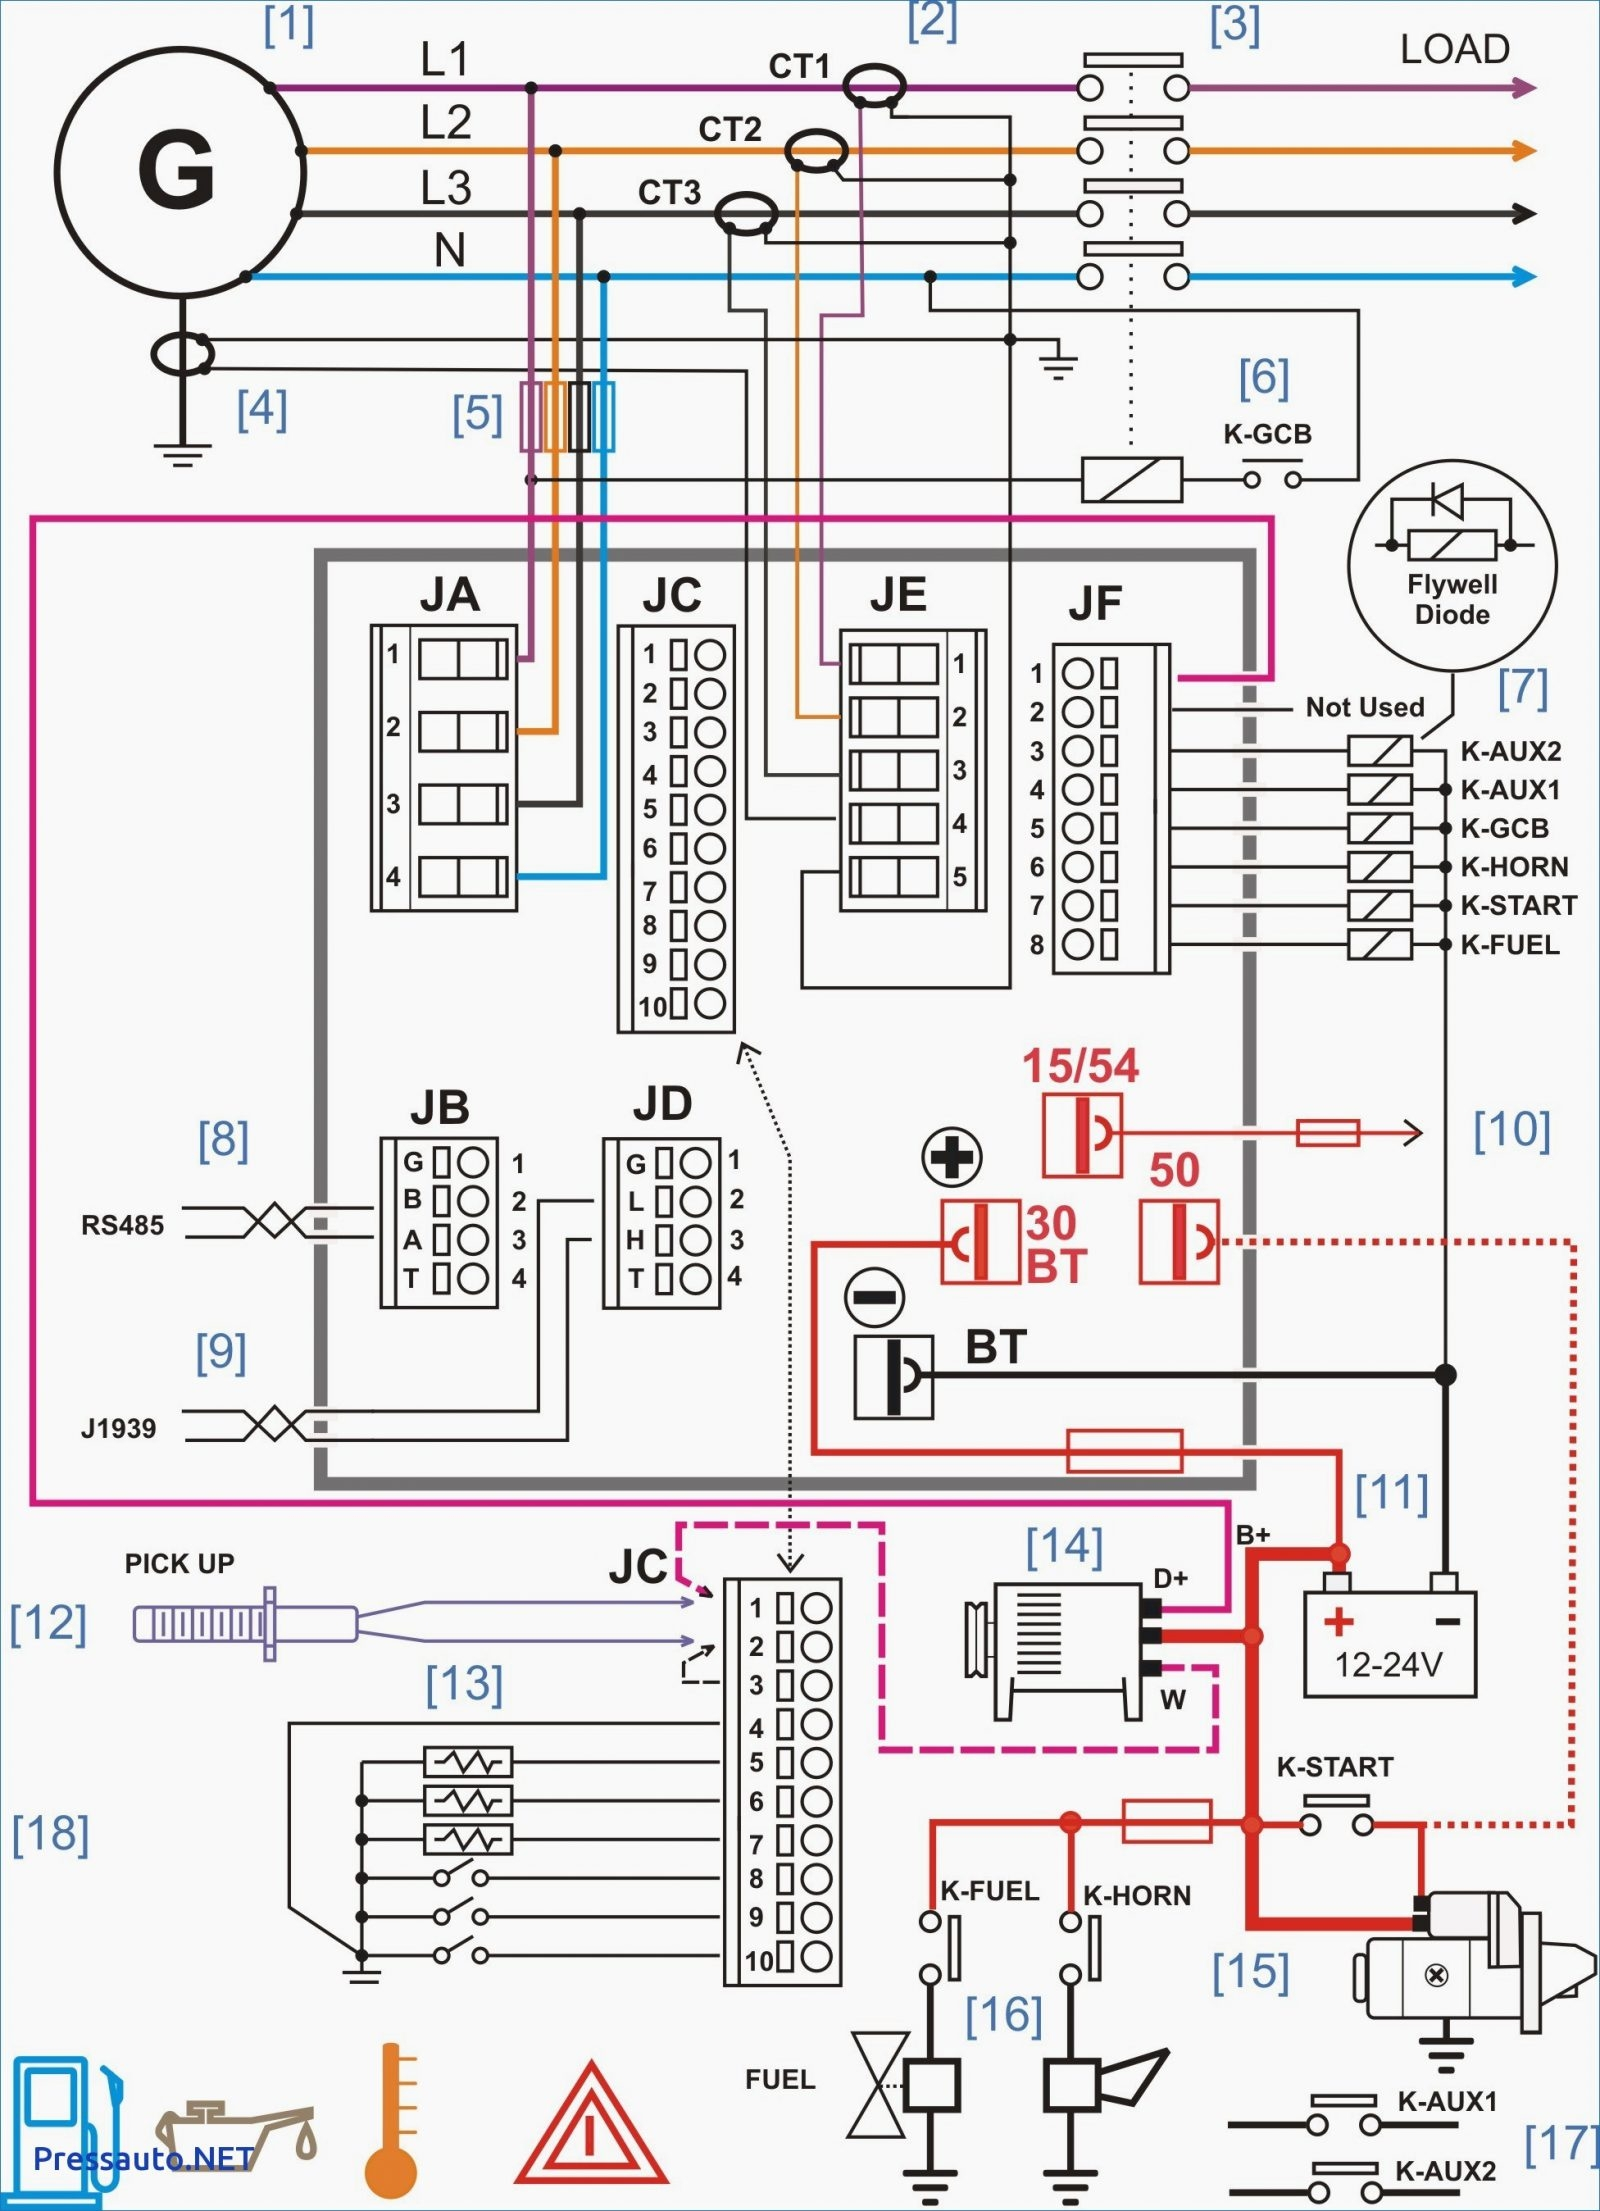 asco automatic transfer switch series 300 wiring diagram Download-Asco Automatic Transfer Switch Series 300 Wiring Diagram asco 7000 Series Automatic Transfer Switch Wiring 18-e